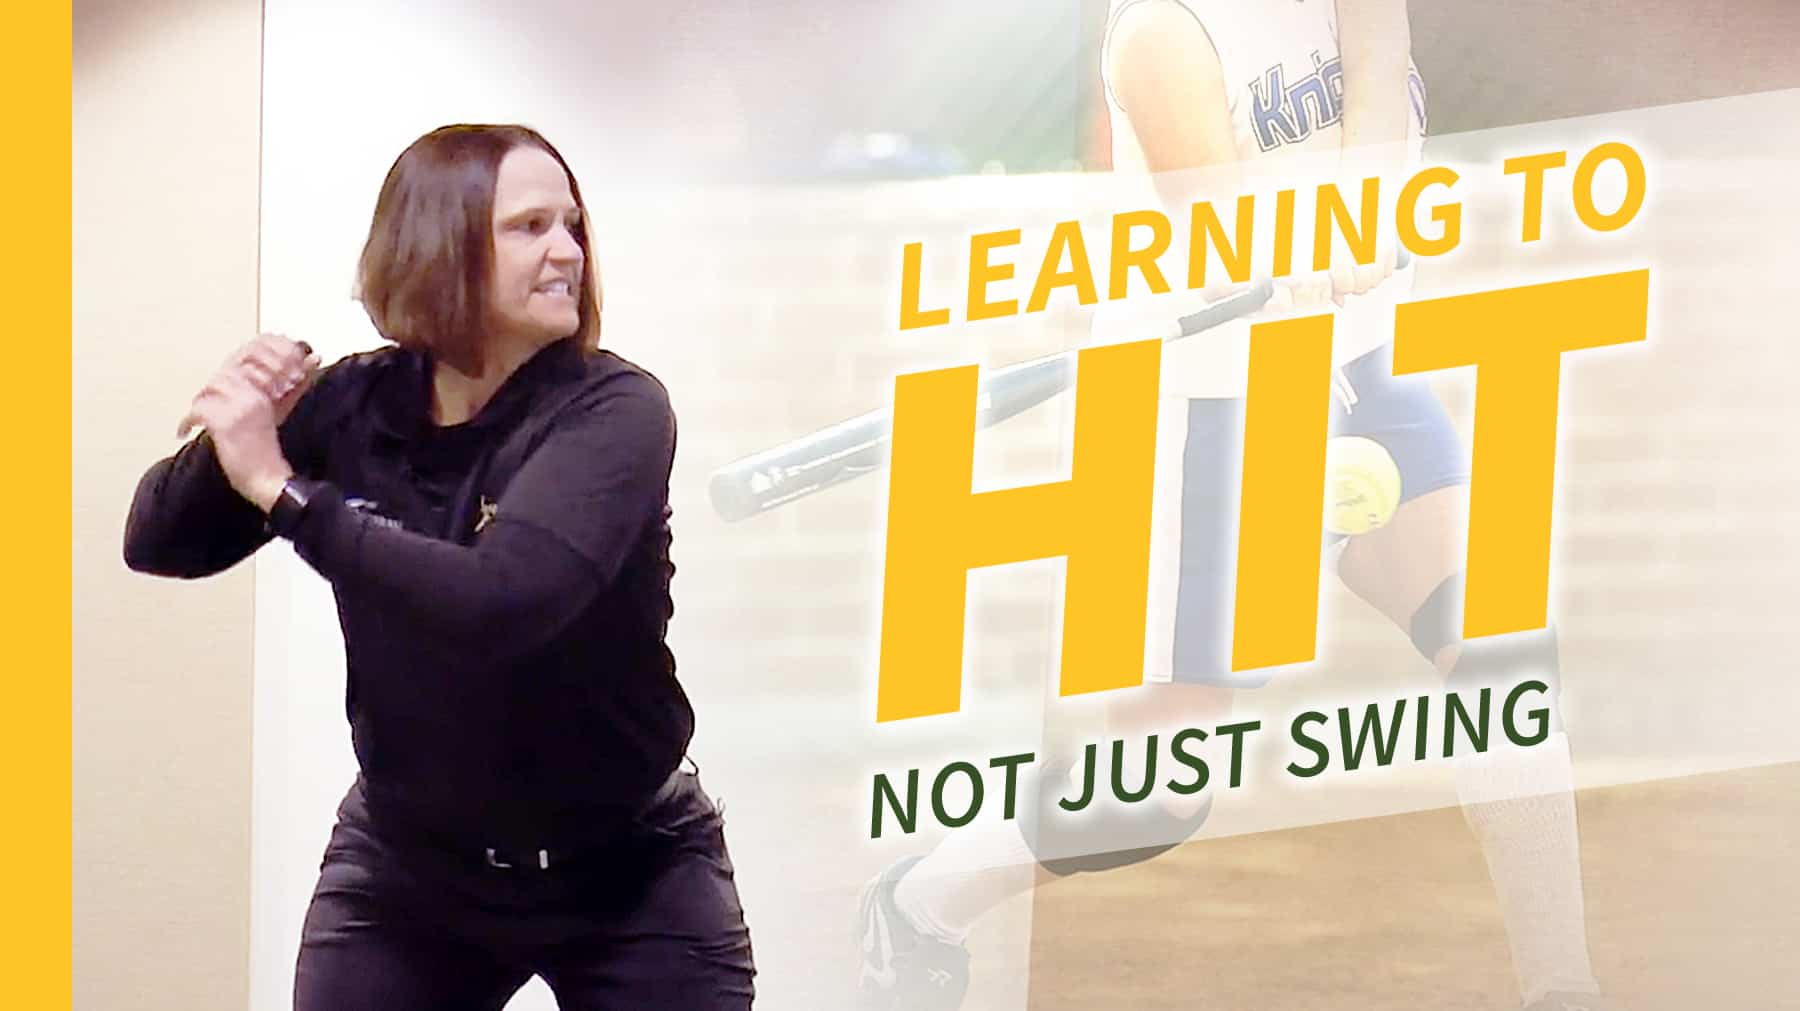 Hitting Learning To Hit Not Just Swing